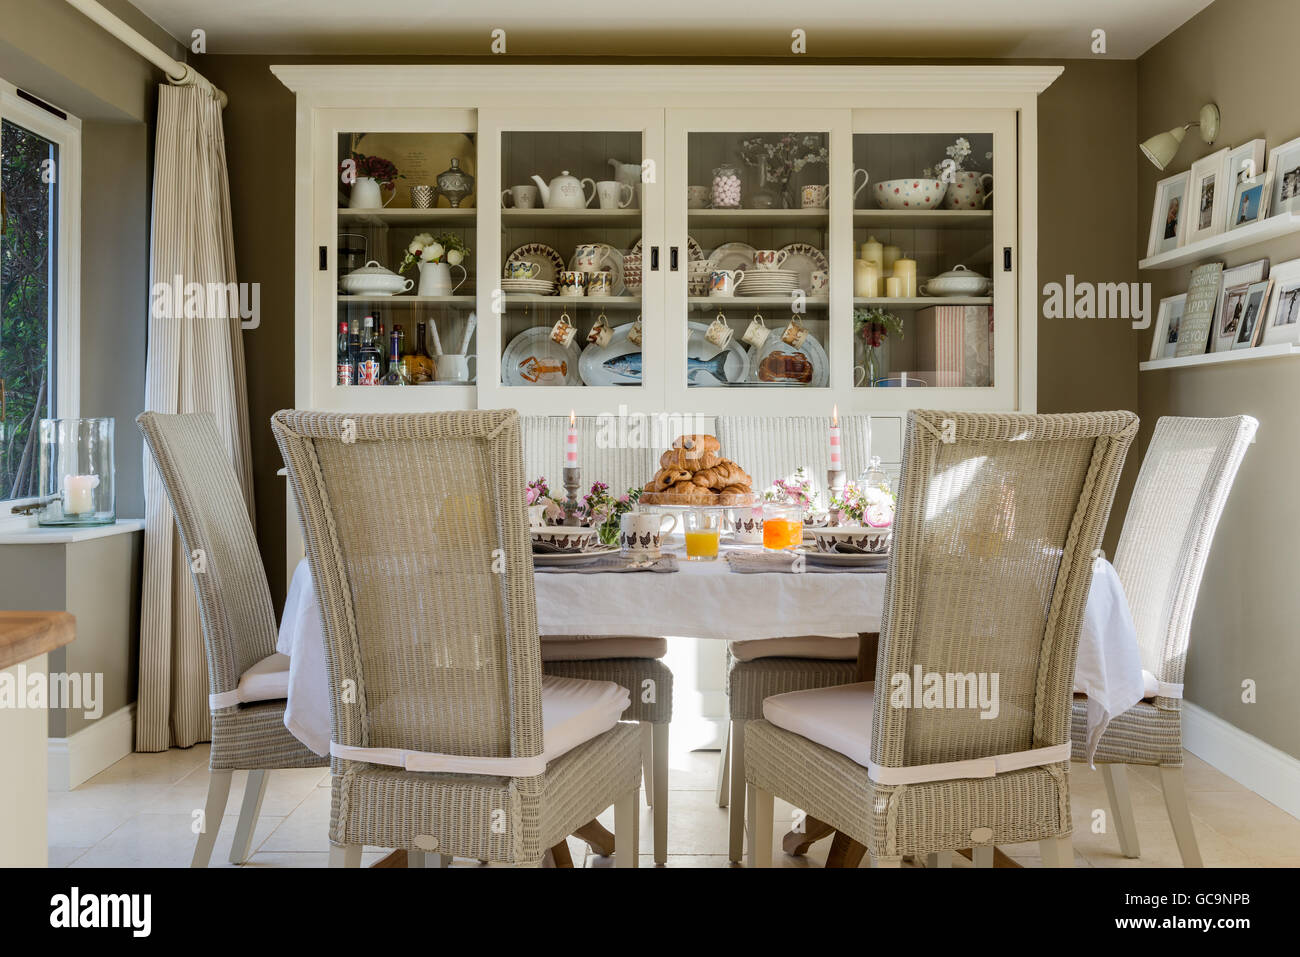 Fulham Lloyd Loom dining chairs around table laid with croissant. A large white dresser stands in the background - Stock Image